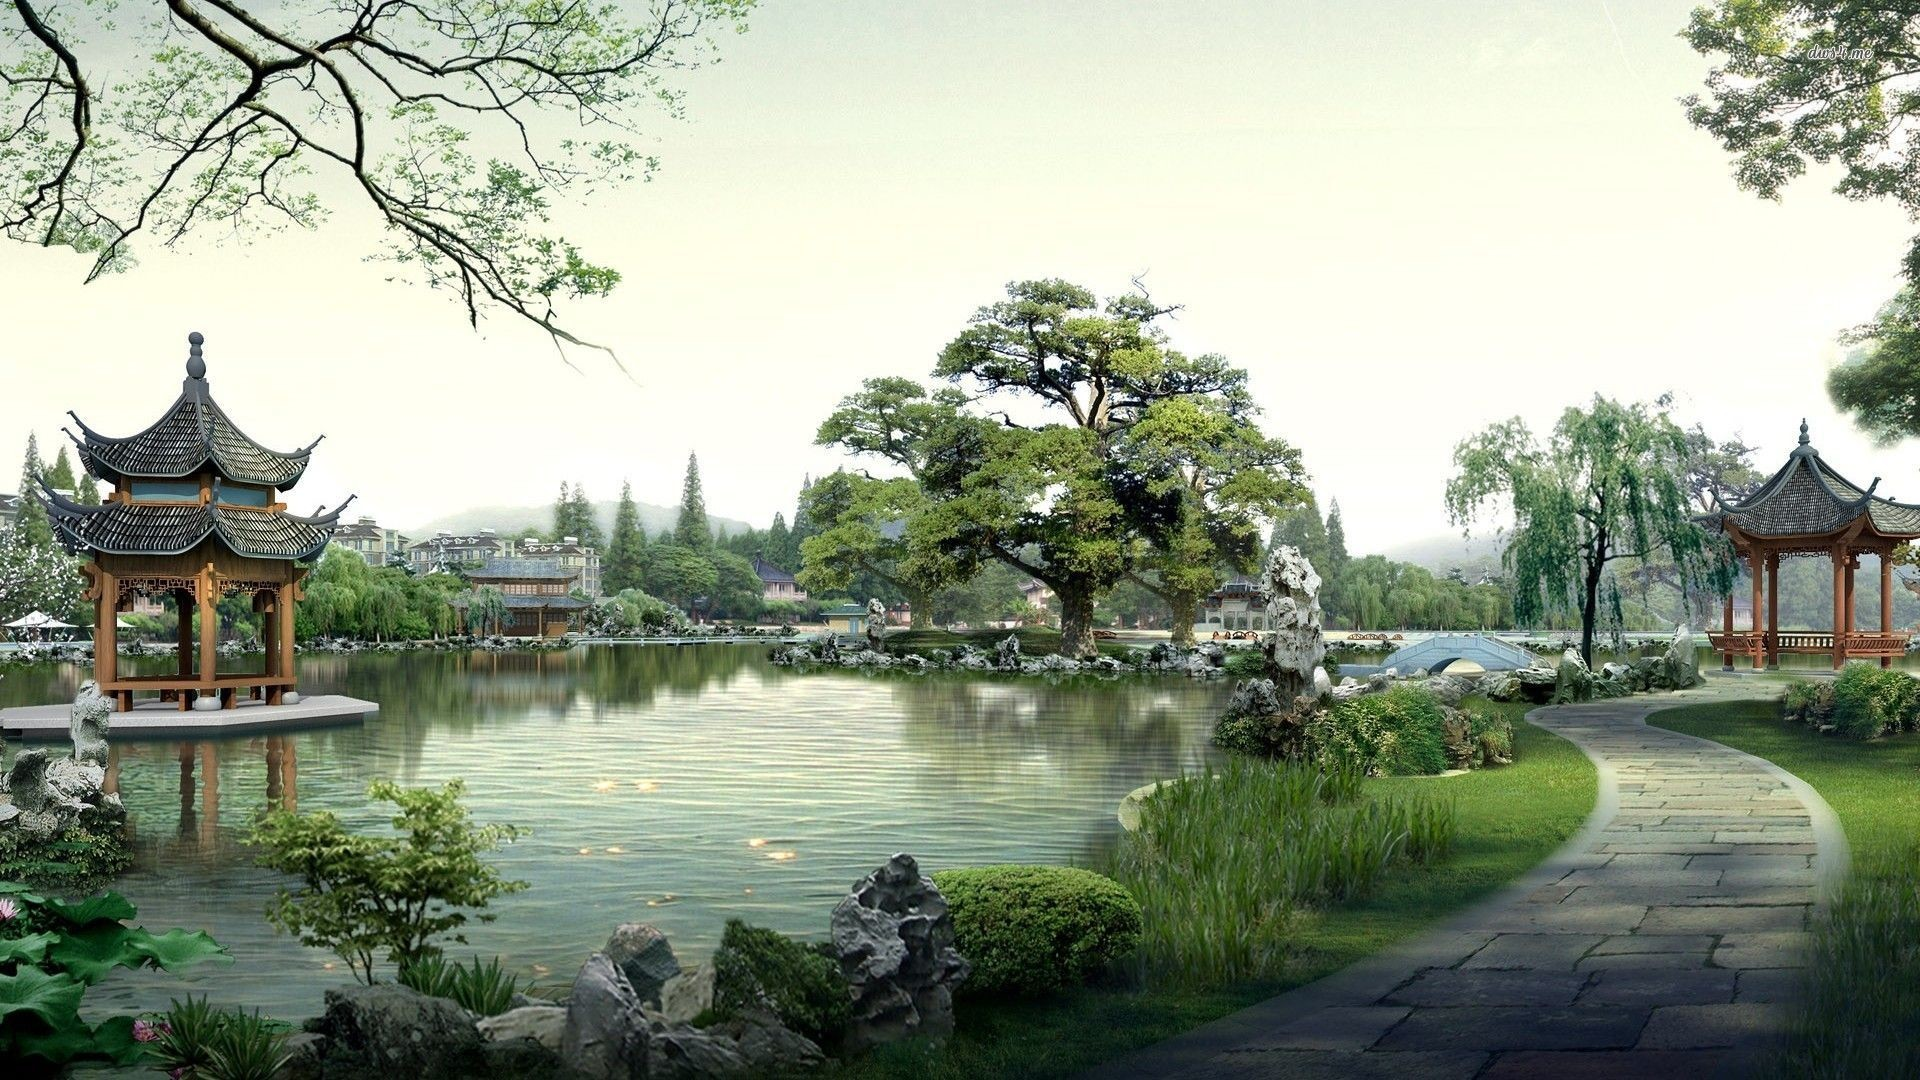 Delicieux 1920x1080 Japanese Garden Kyoto HD Desktop Wallpaper Widescreen High | HD  Wallpapers | Pinterest | Hd